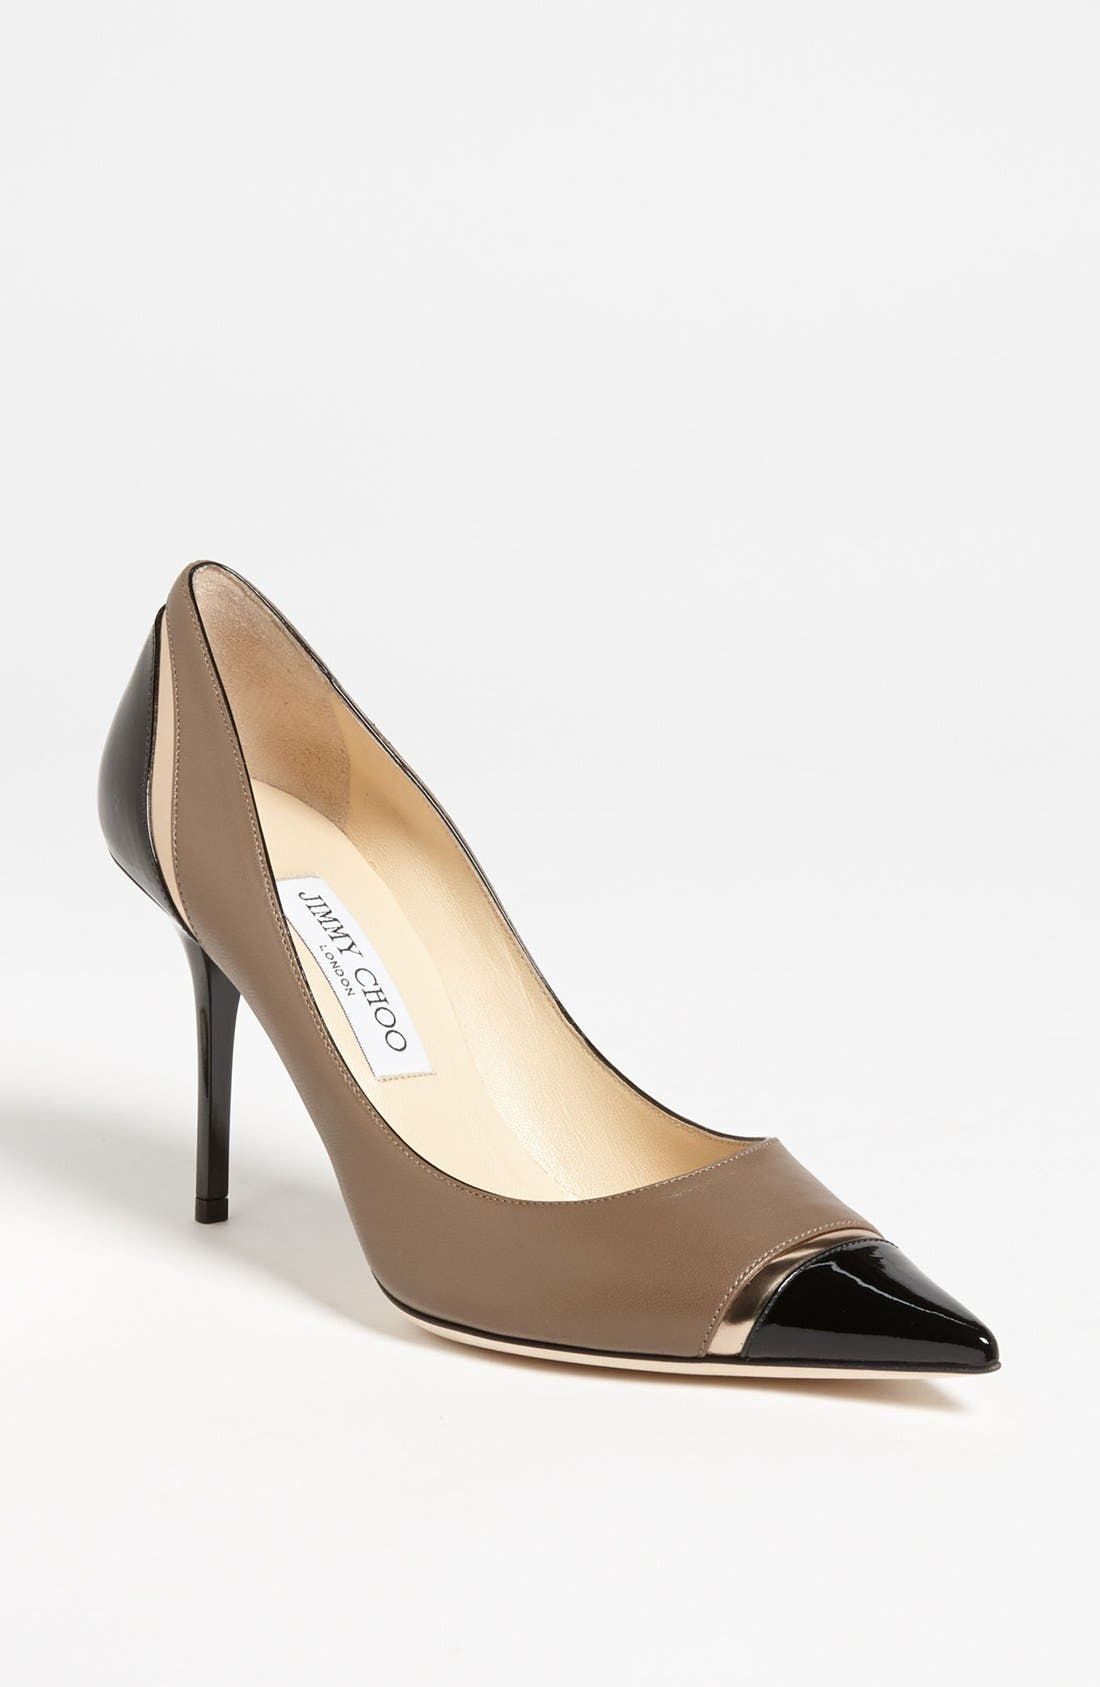 Main Image - Jimmy Choo 'Lilo' Cap Toe Pump